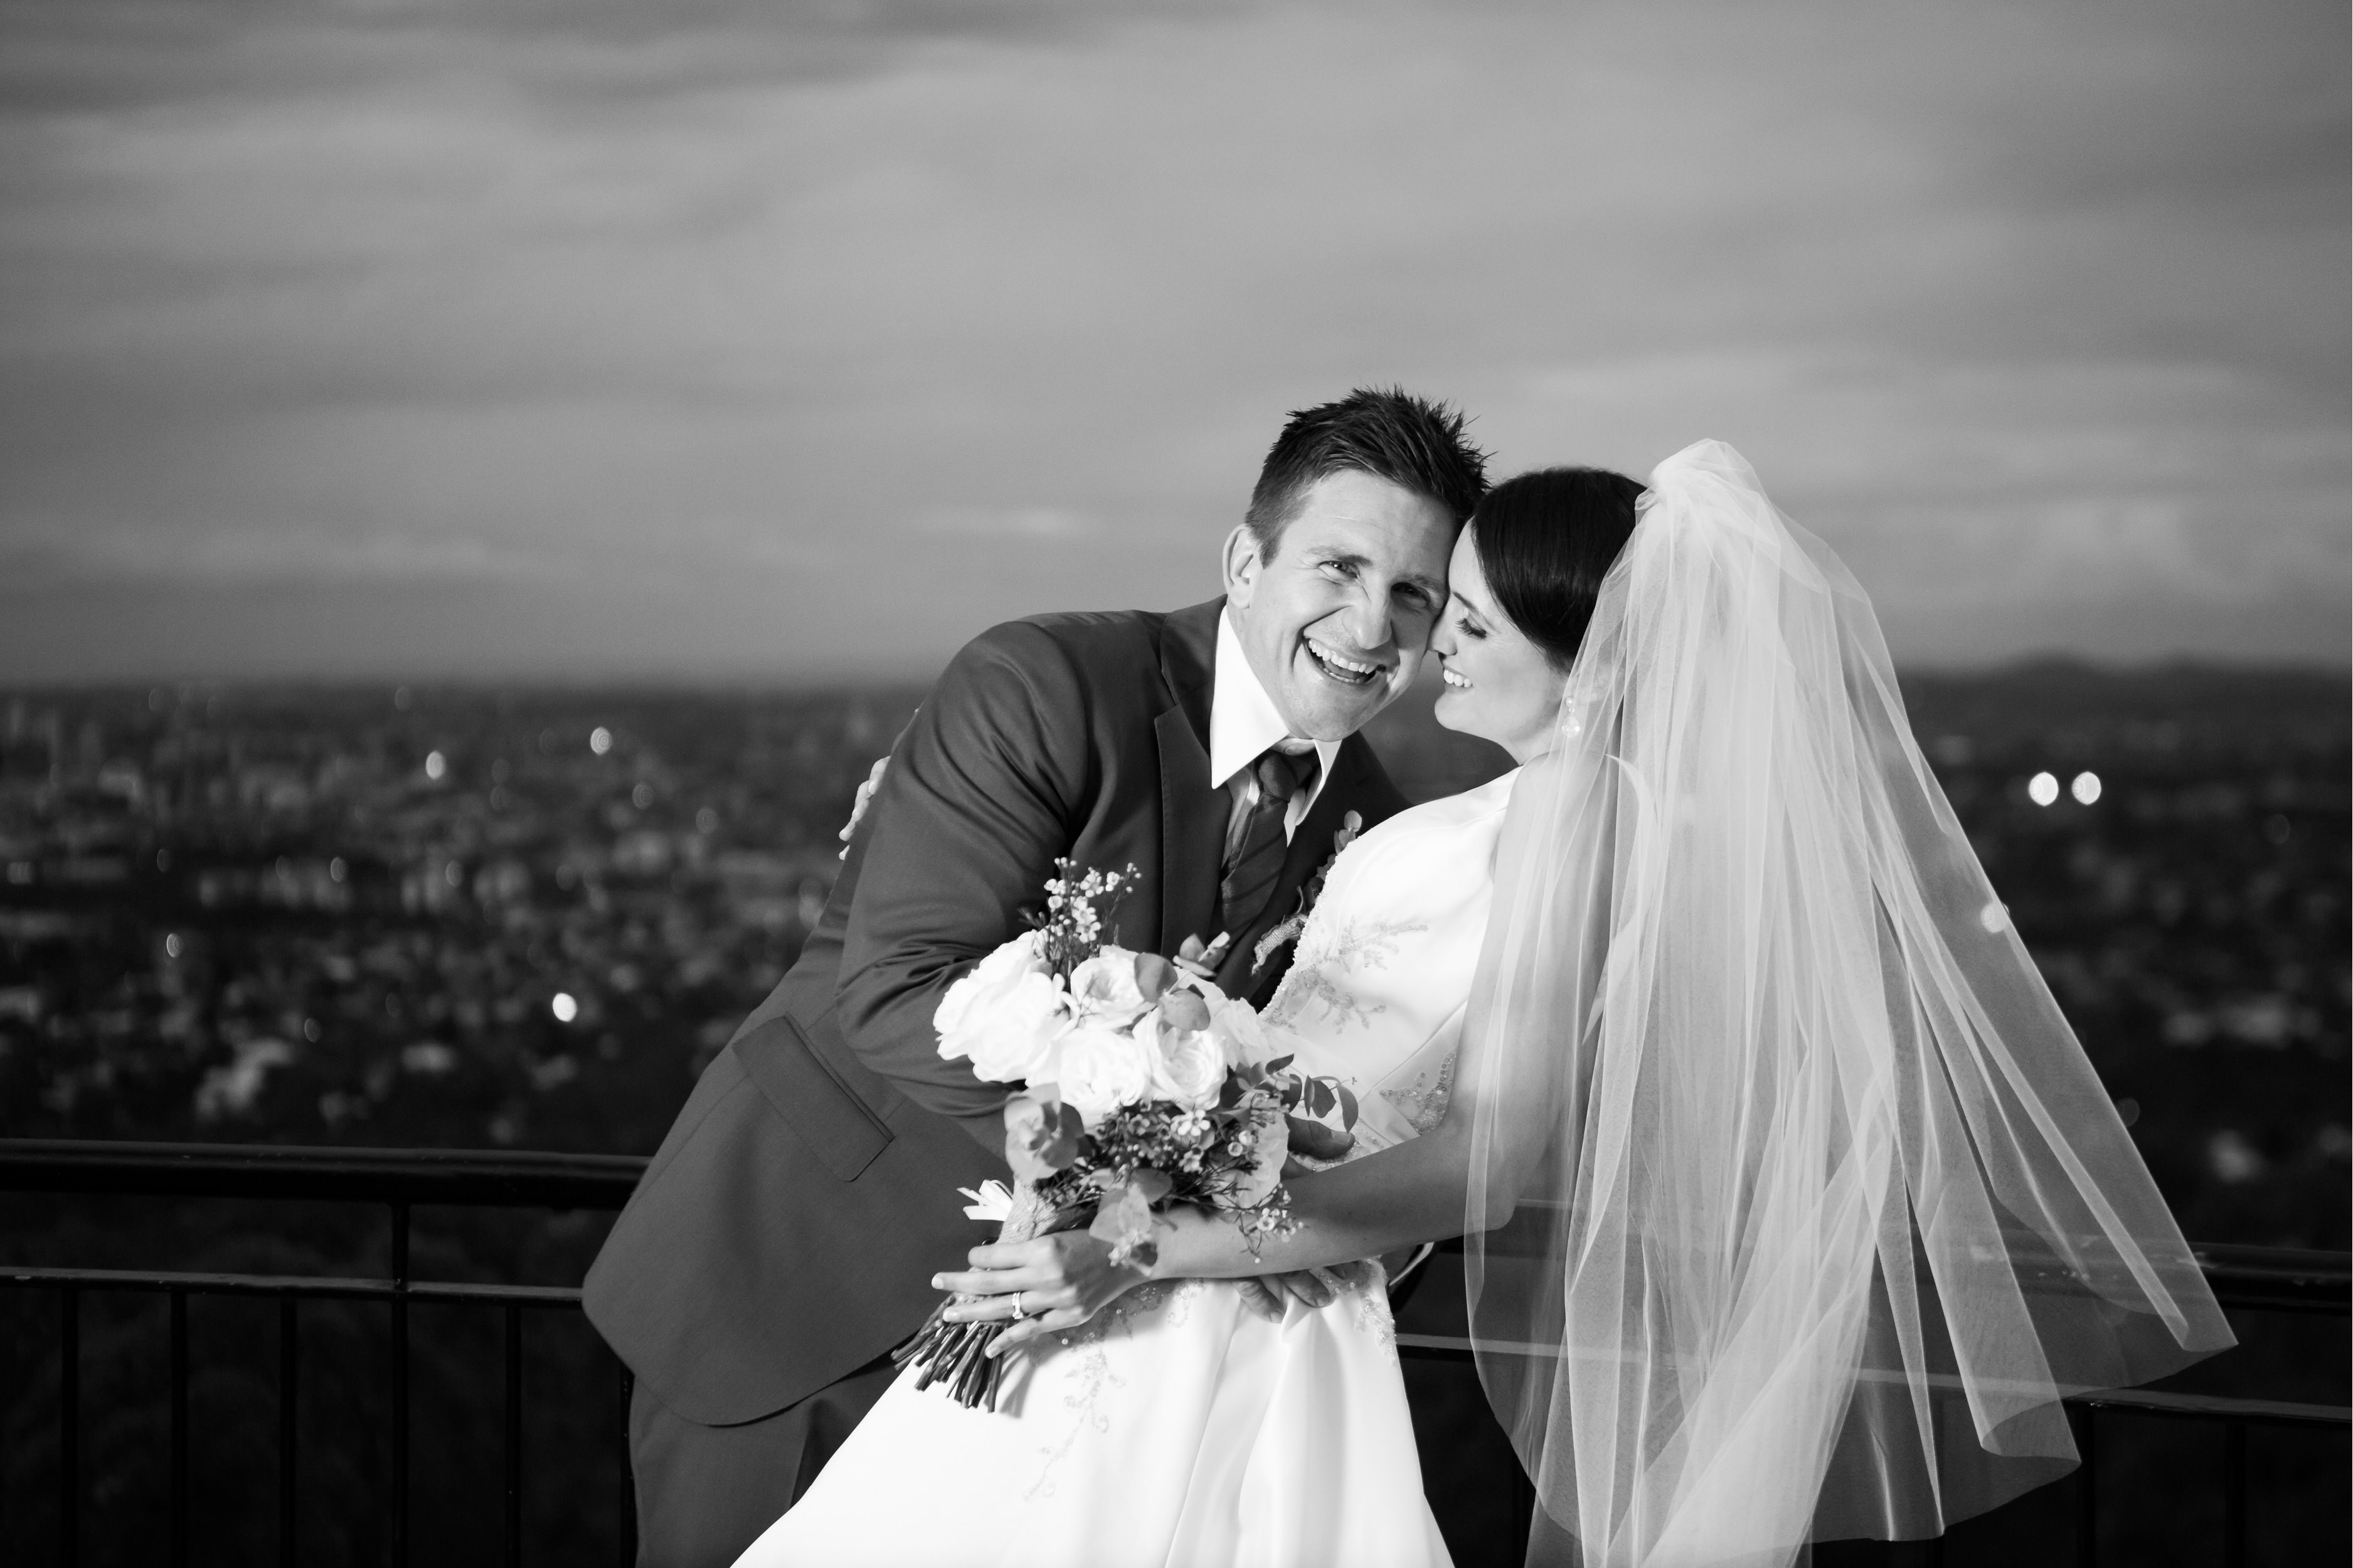 Emma_cleary_photography Destination wedding16